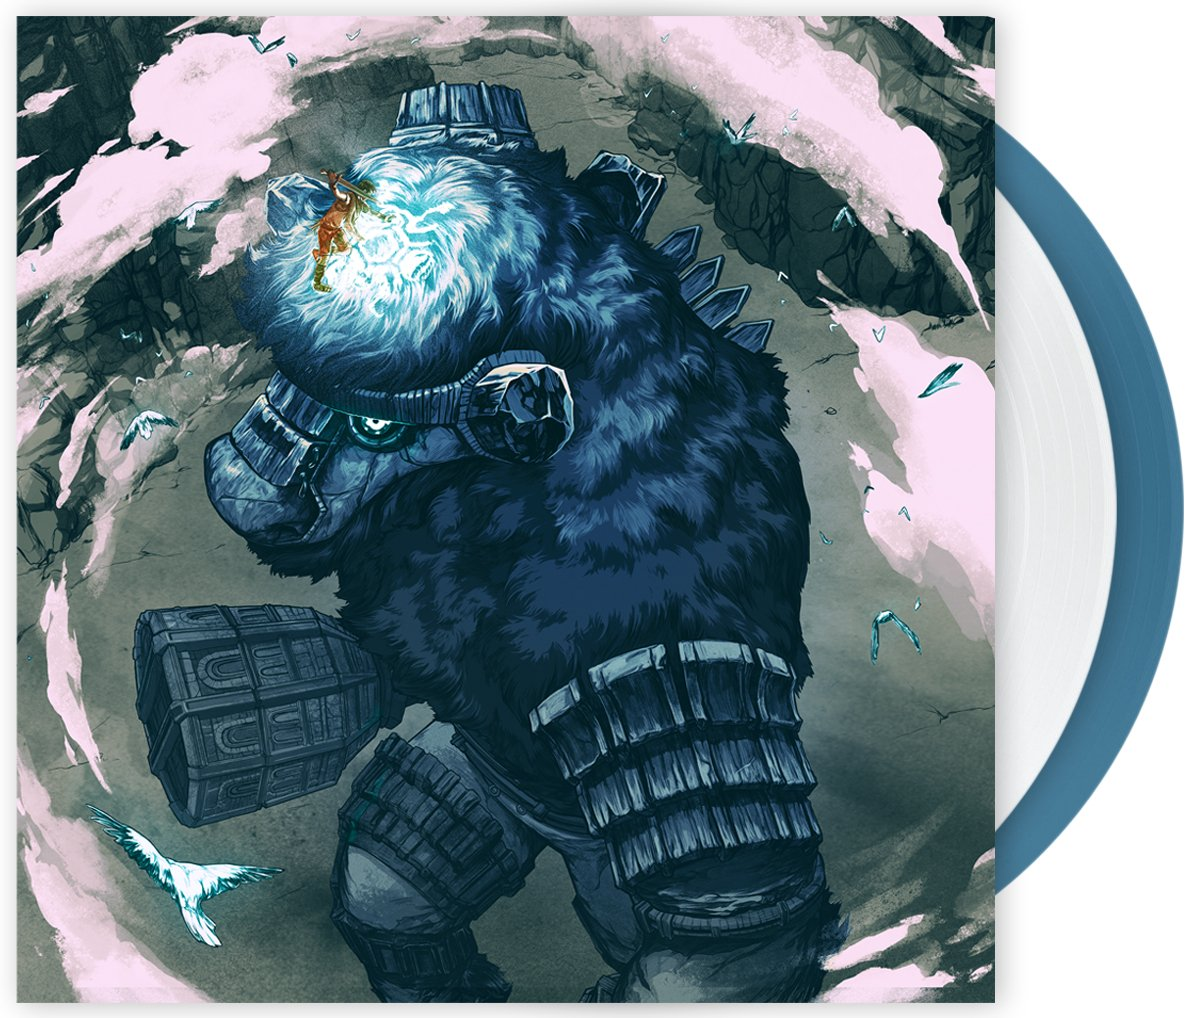 Shadow of the Colossus (2xLP) Vinyl Soundtrack - iam8bit (Asie et Océanie)